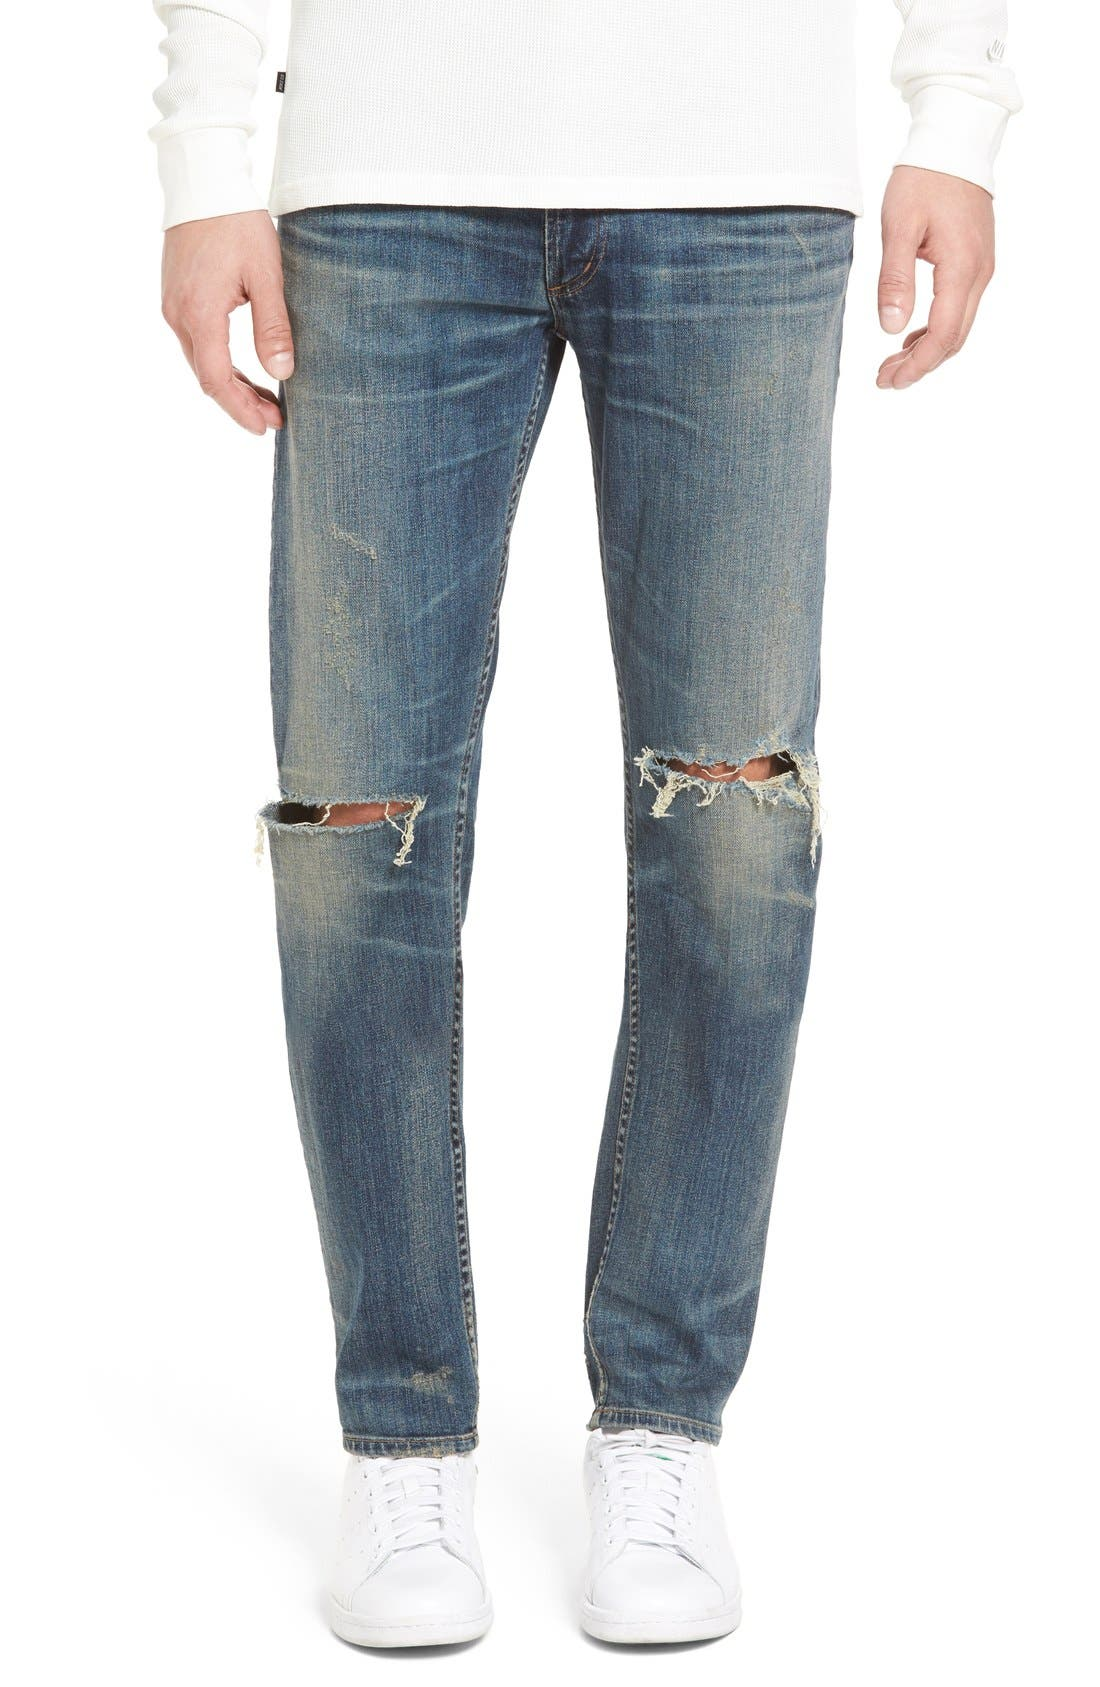 Bowery Slim Fit Jeans,                         Main,                         color,